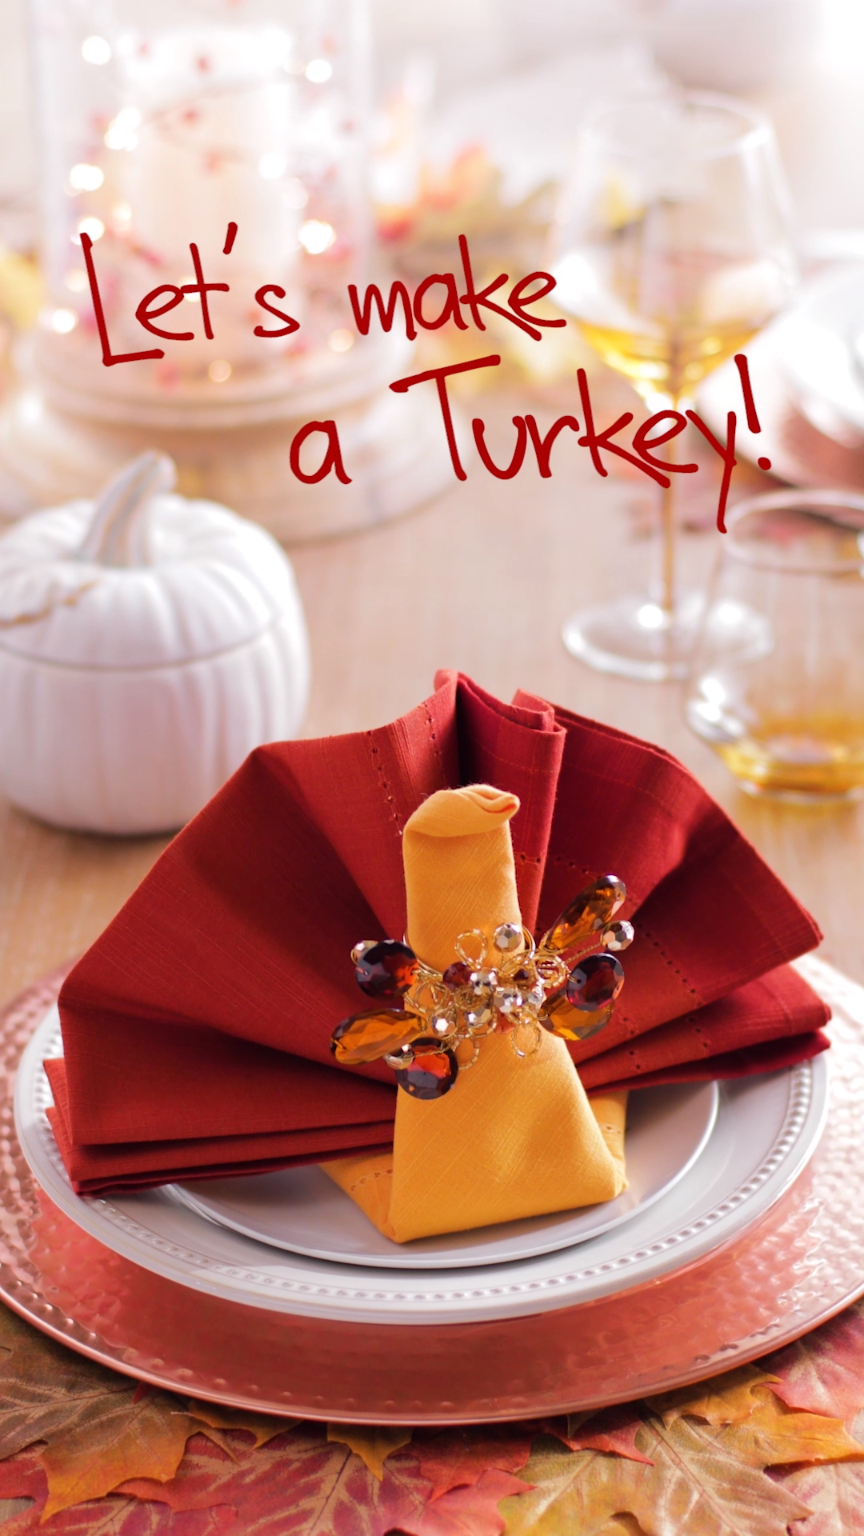 The art of entertaining: You can impress your Thanksgiving guests if you know how to carve a turkey, but we bet they'd be really amazed if you know how to fold a turkey! #foldingnapkins